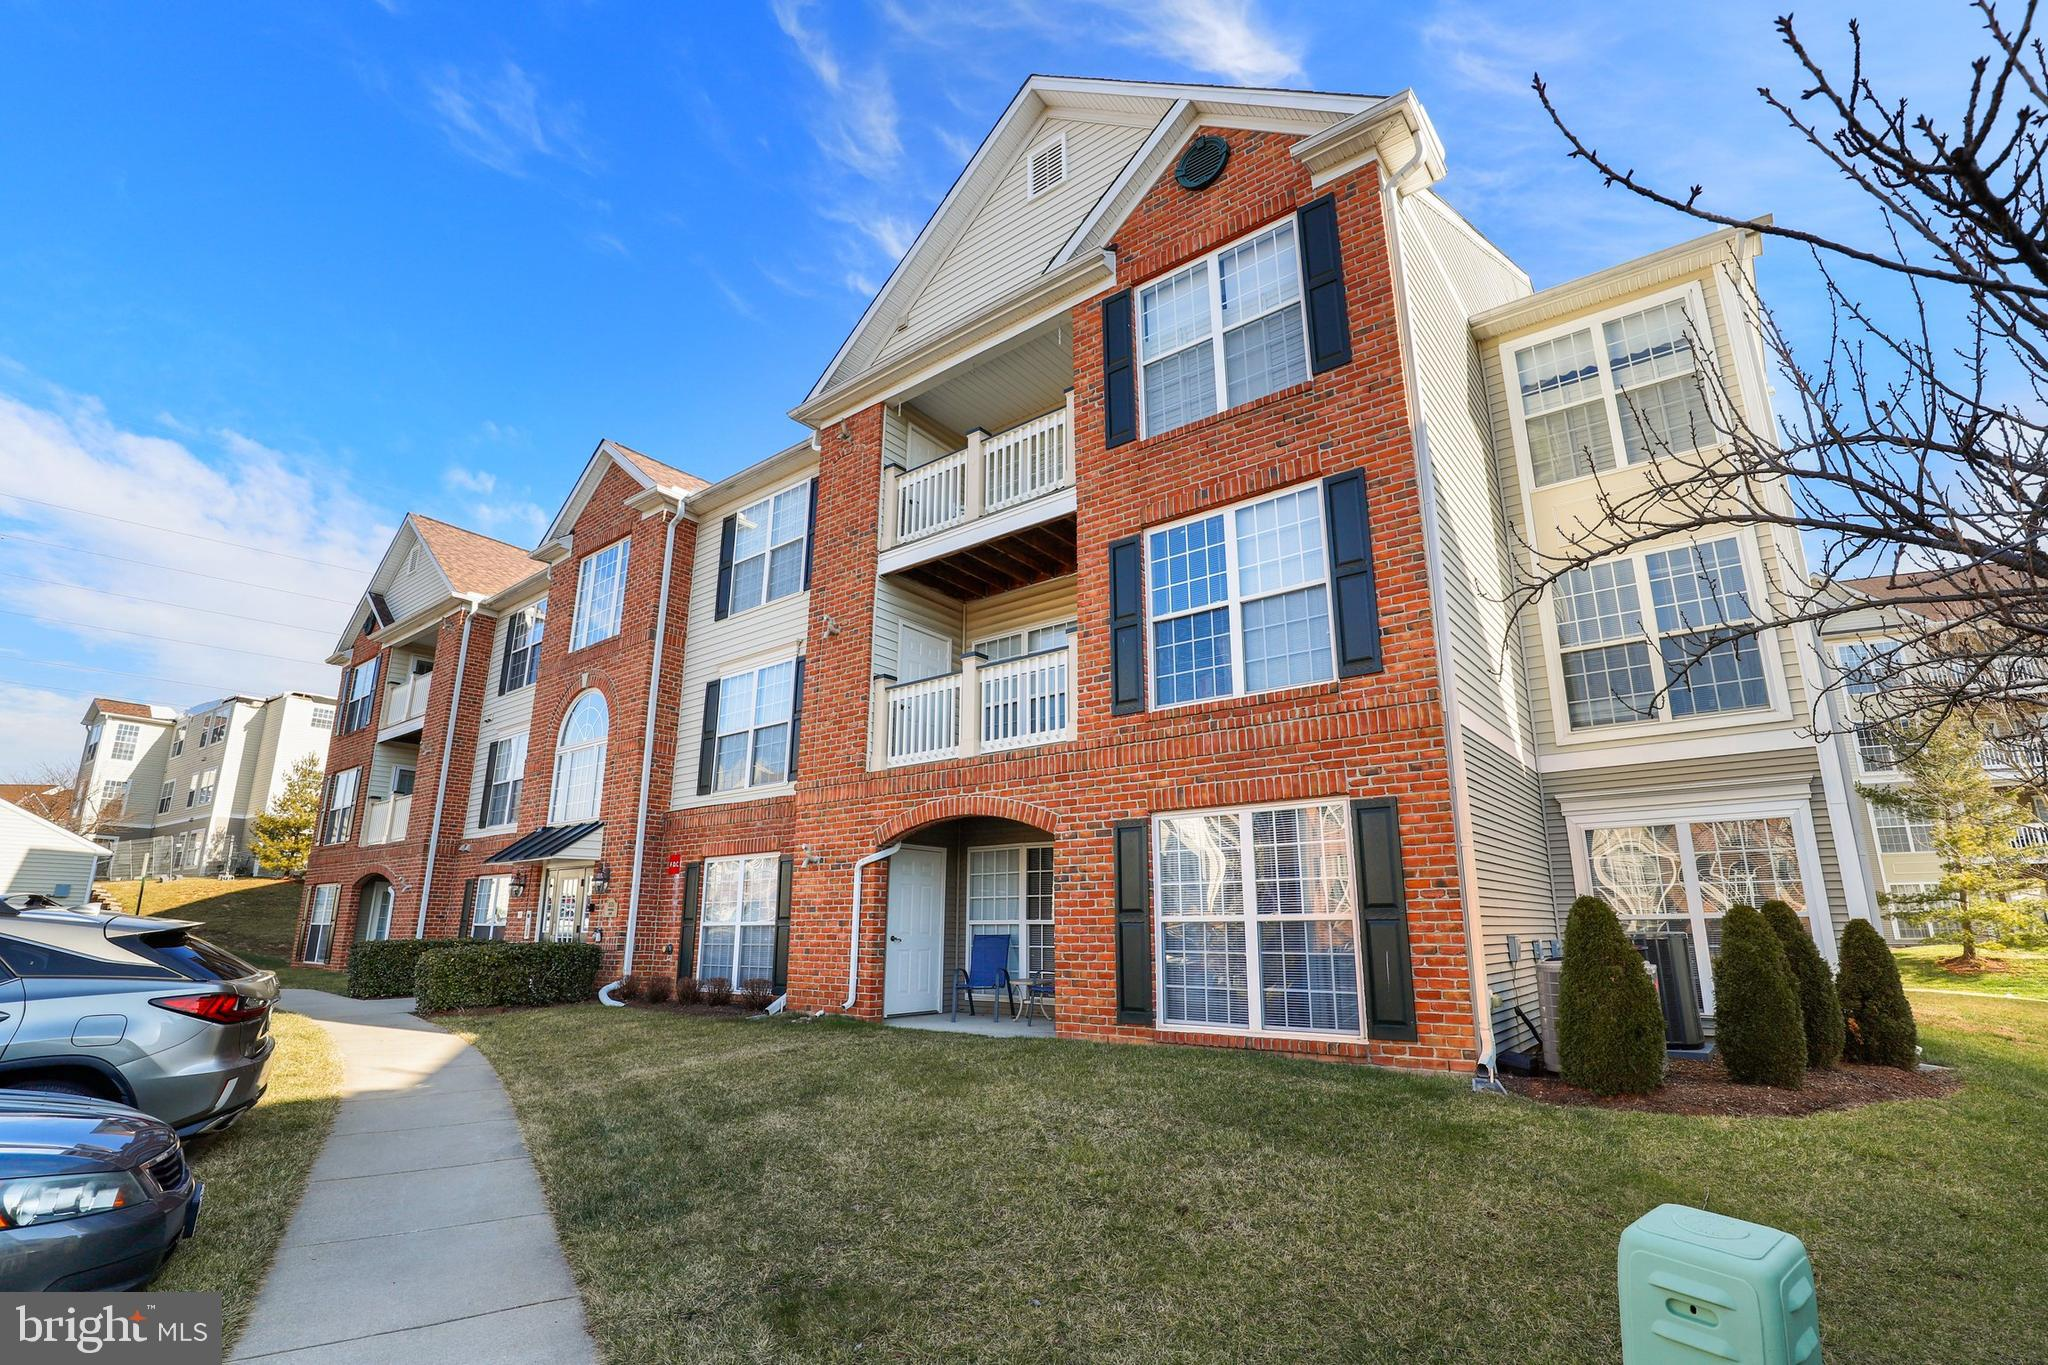 Beautiful, 2 bedroom, 2 bath, spacious condo in elevator building. There is a garage deeded with the